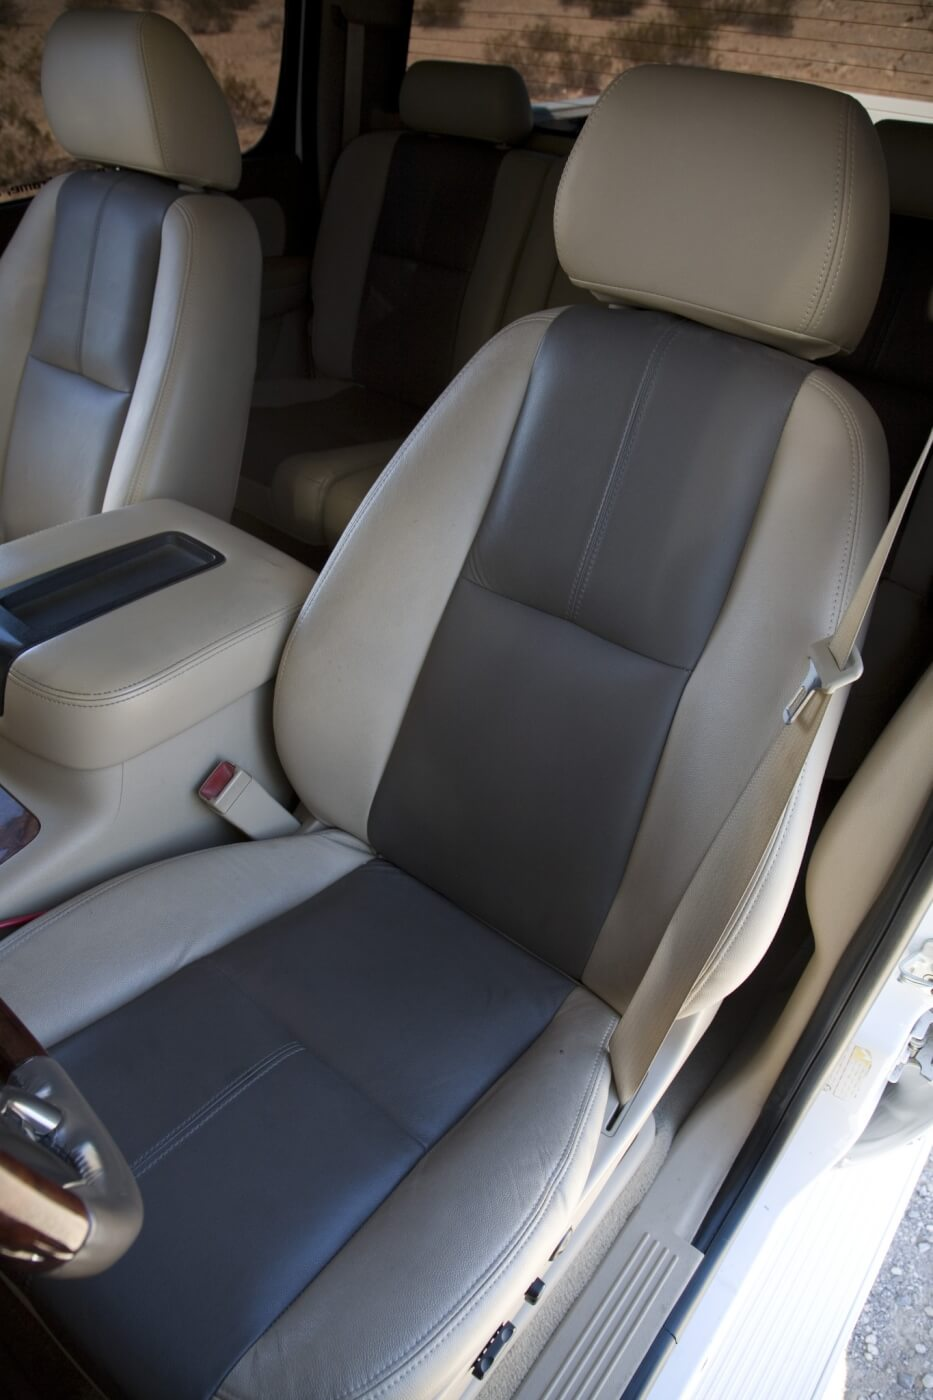 The seats have been recovered, front and rear, with Katzkin leather that matches the factory tan carpet and gray accents.